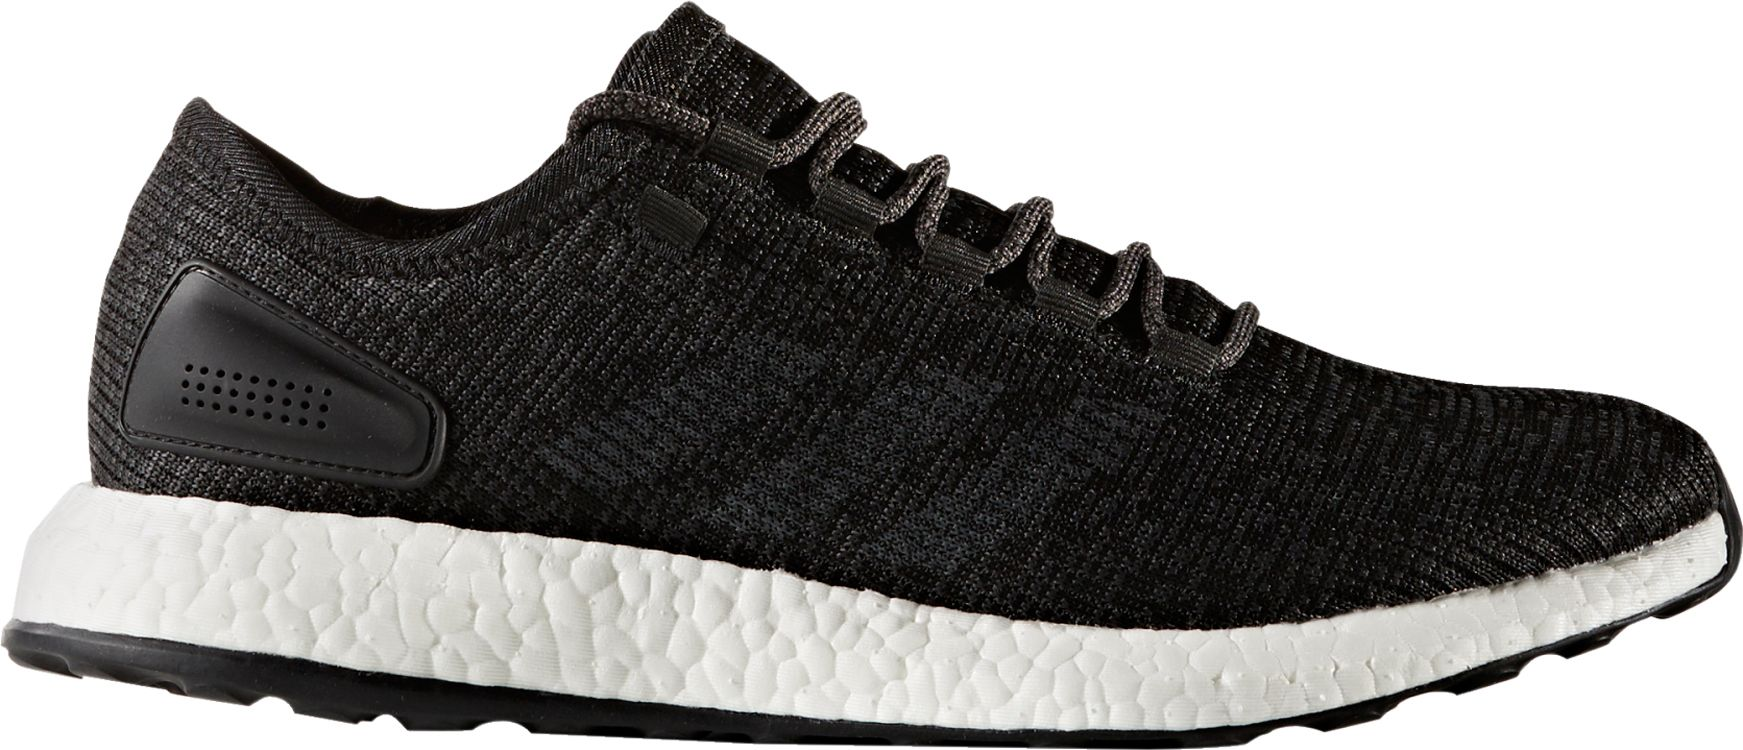 adidas Men's PureBOOST Running Shoes. 0:00. 0:00 / 0:00. noImageFound ???